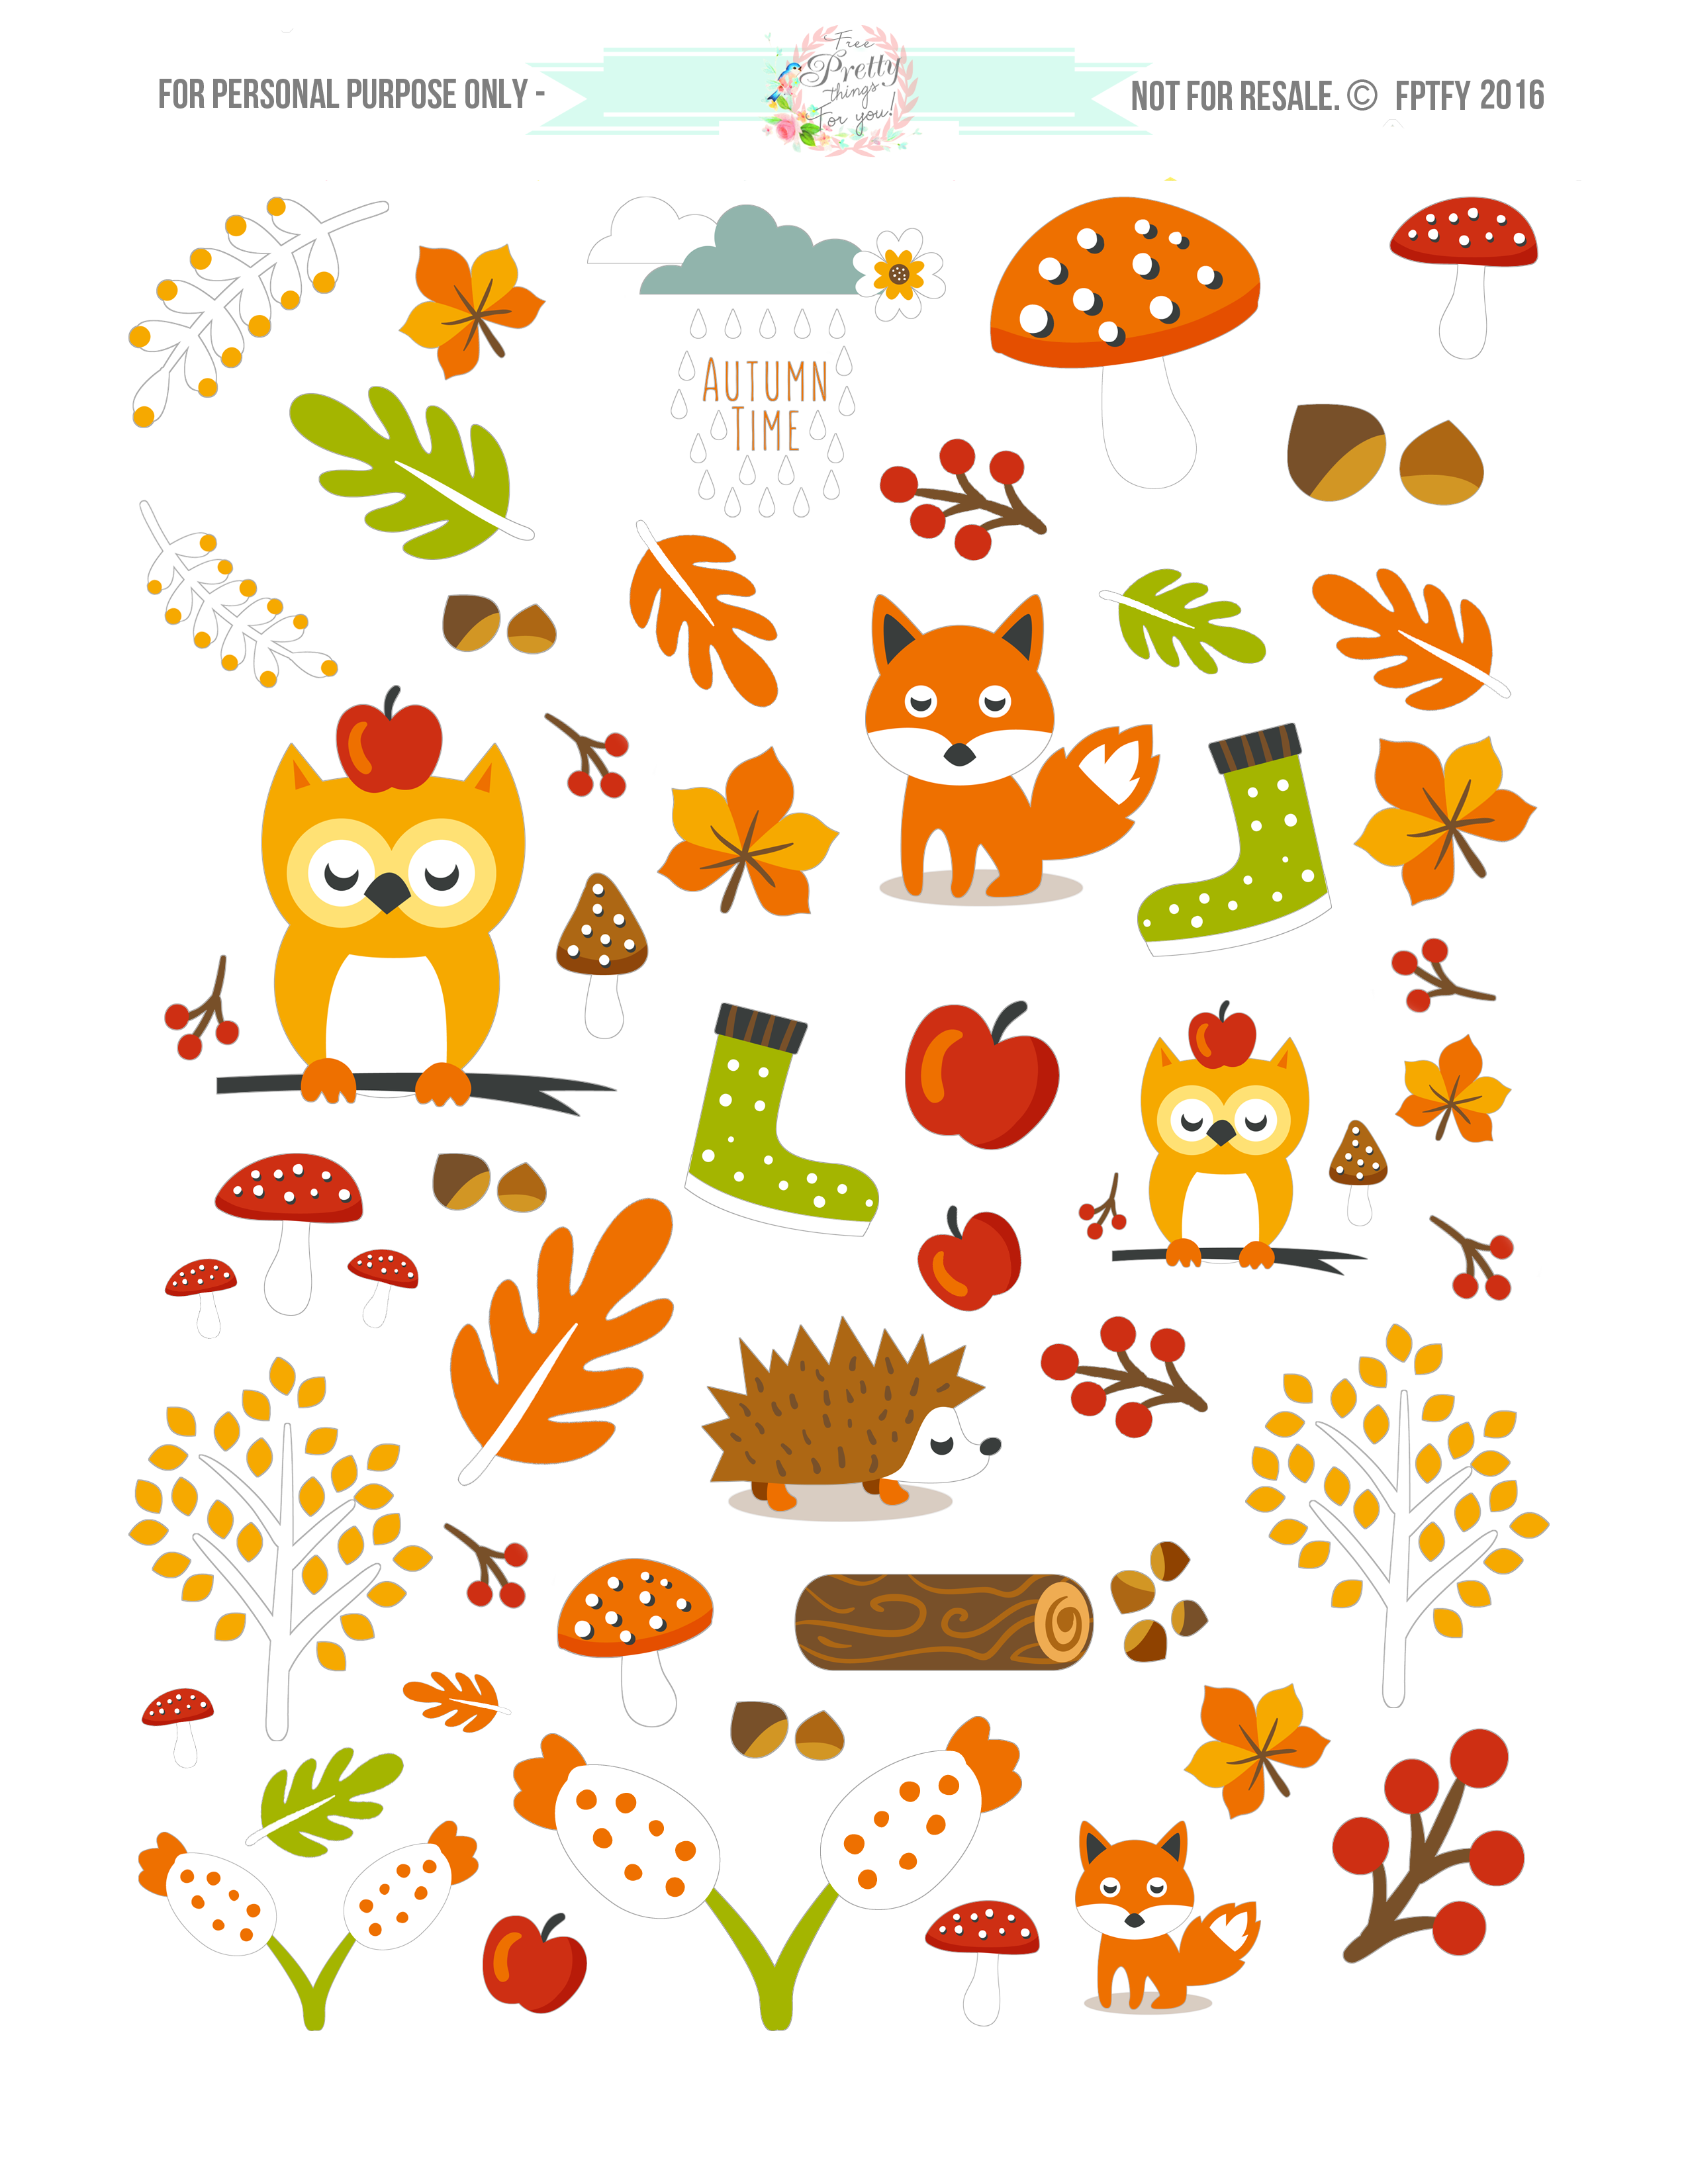 Planner clipart planner sticker. Free cute autumn animal